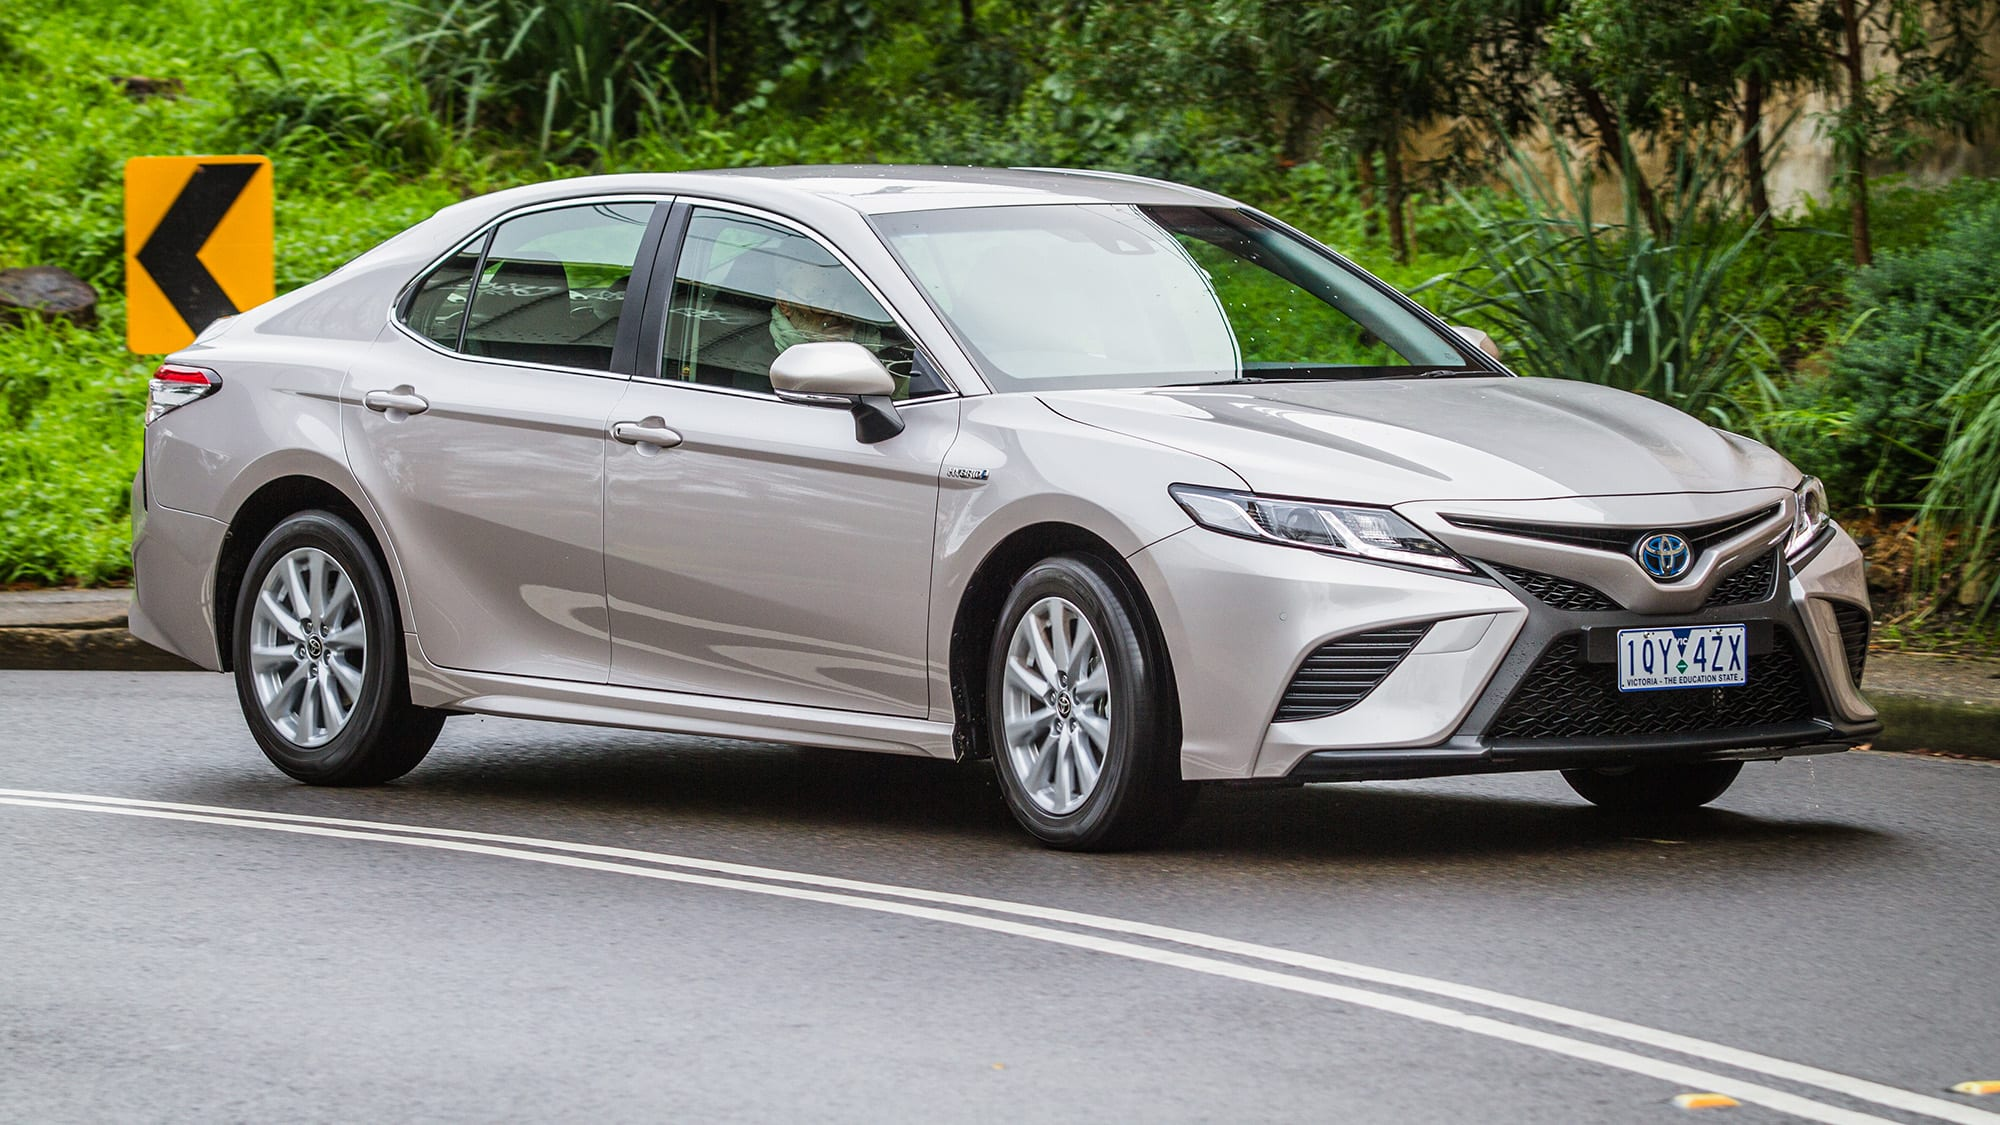 2020 Toyota Camry hybrid review: Ascent Sport